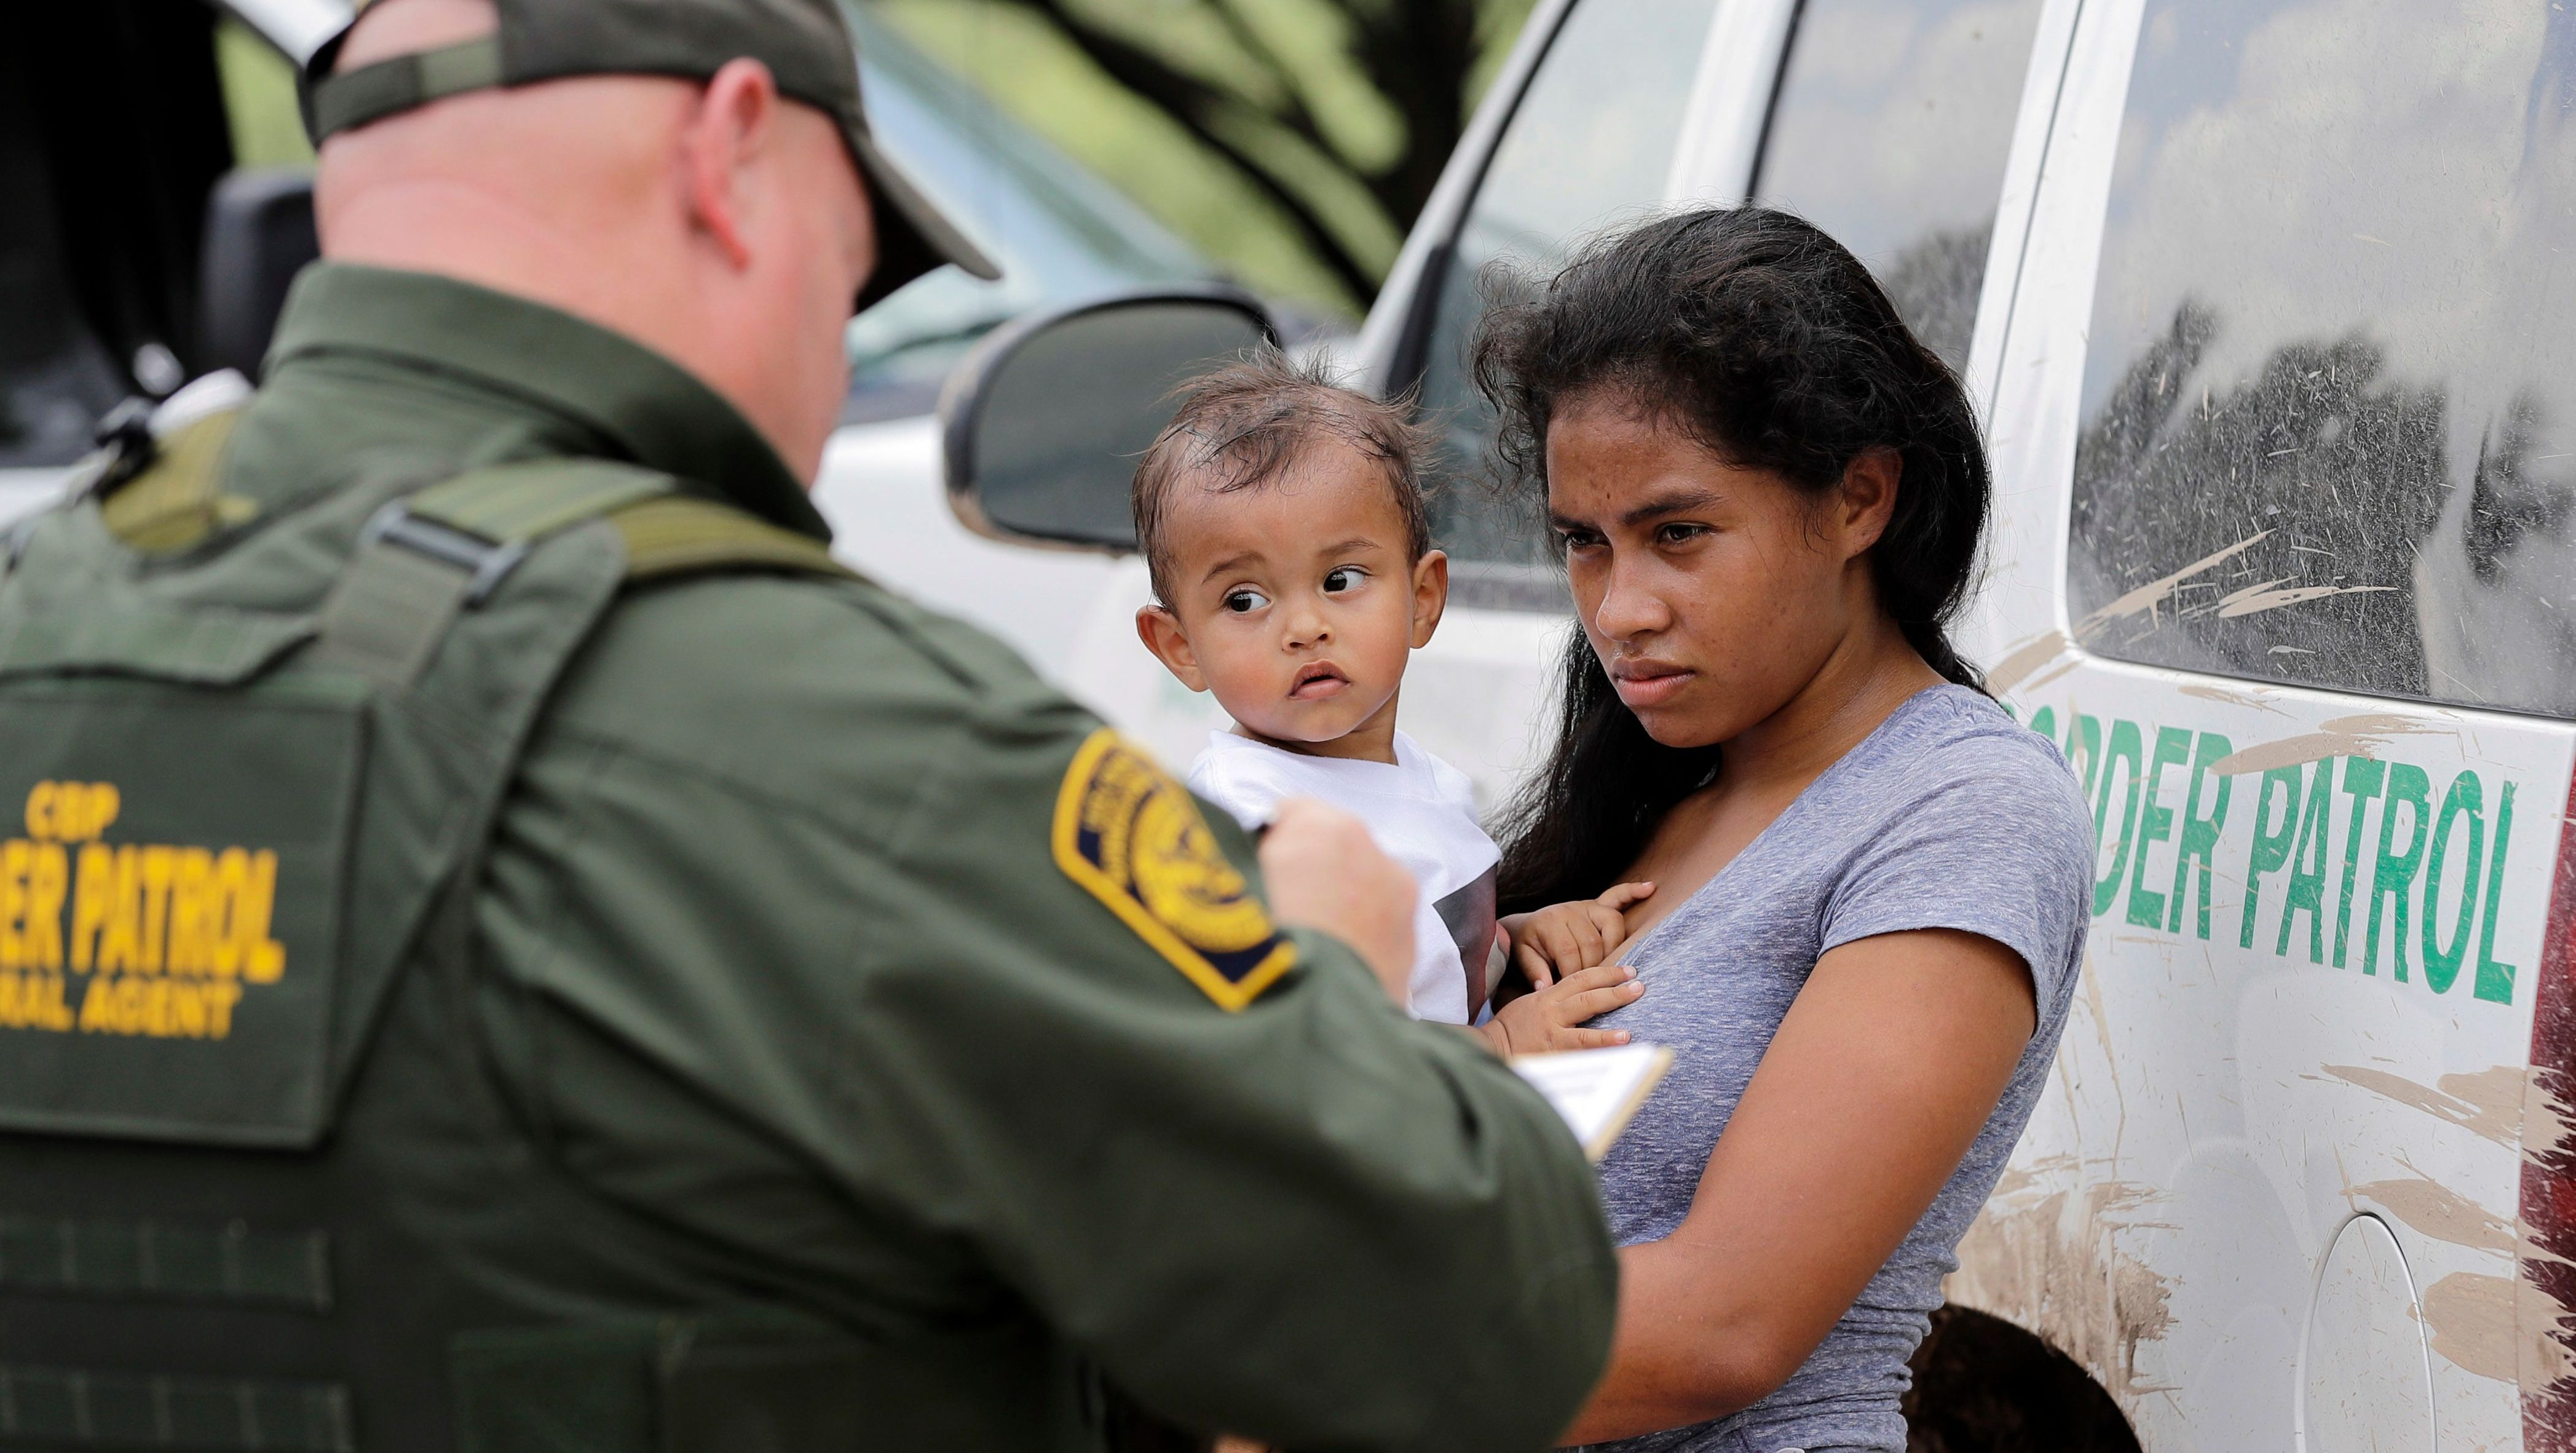 a mother migrating from Honduras holds her 1-year-old child as surrendering to U.S. Border Patrol agents after illegally crossing the border, near McAllen, Texas.